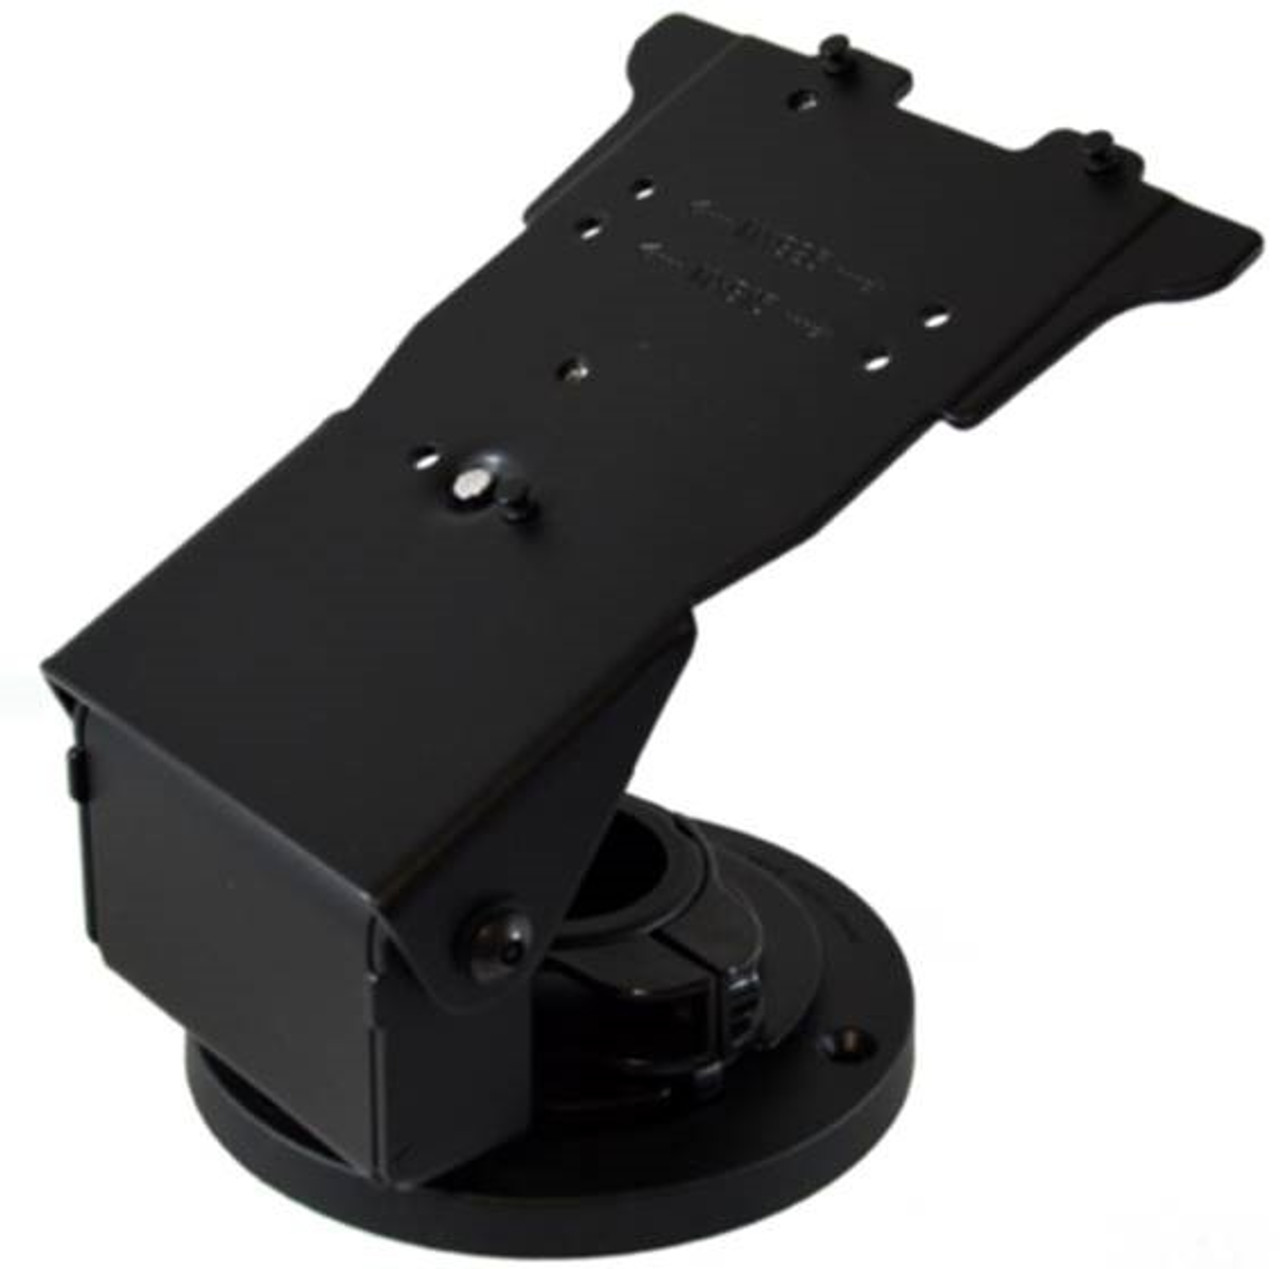 Verifone MX915 POS Stand Open Hole Flip Up EMV Clearance by Swivel Stands